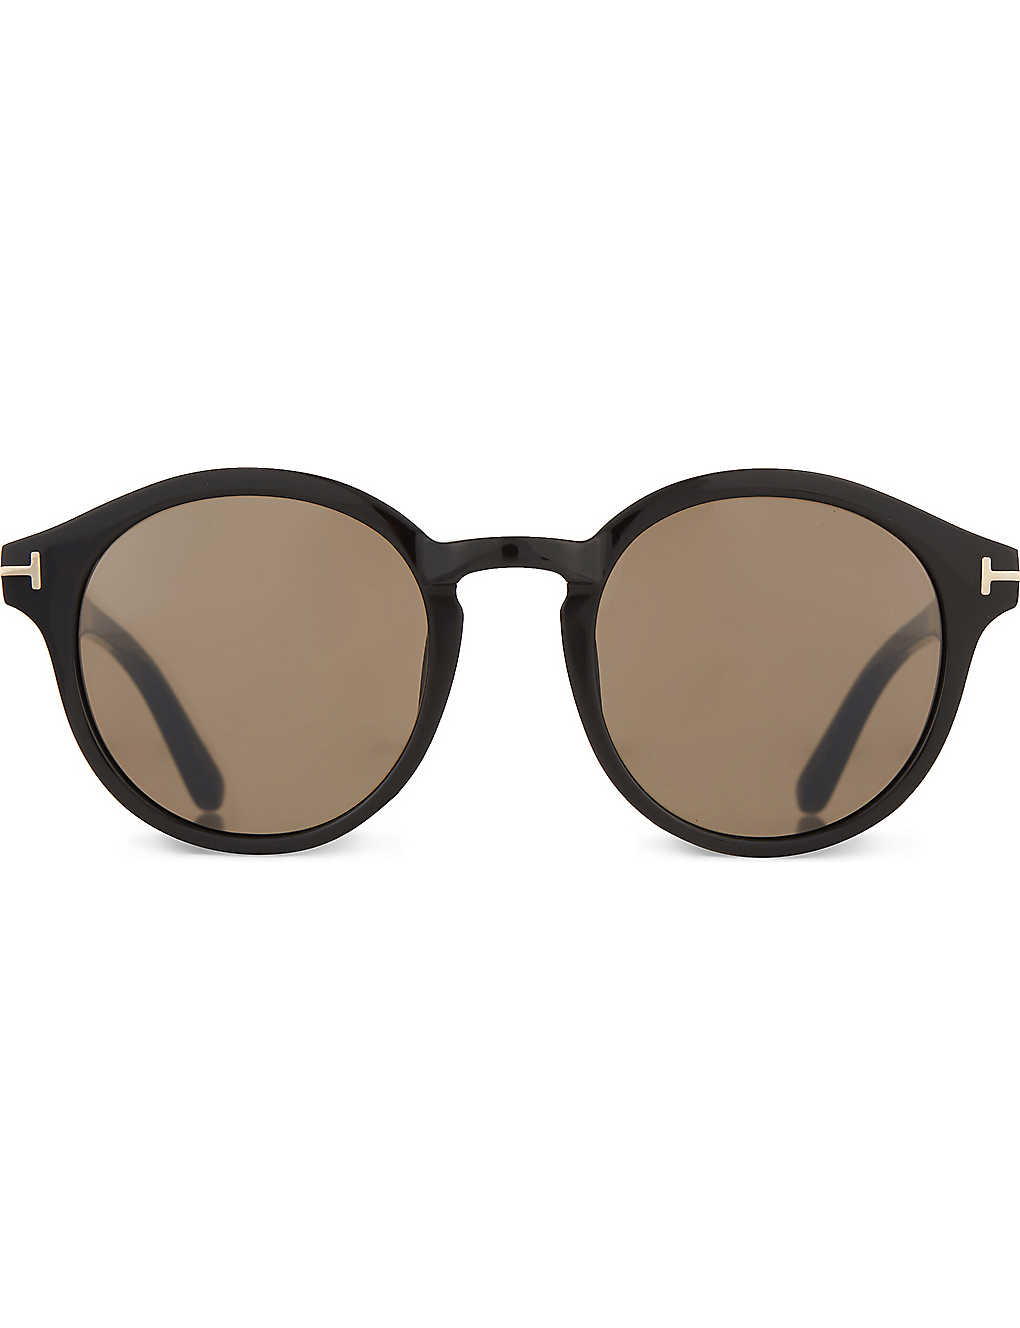 a25805d26d7d7 TOM FORD - TF400 Lucho round-framed sunglasses